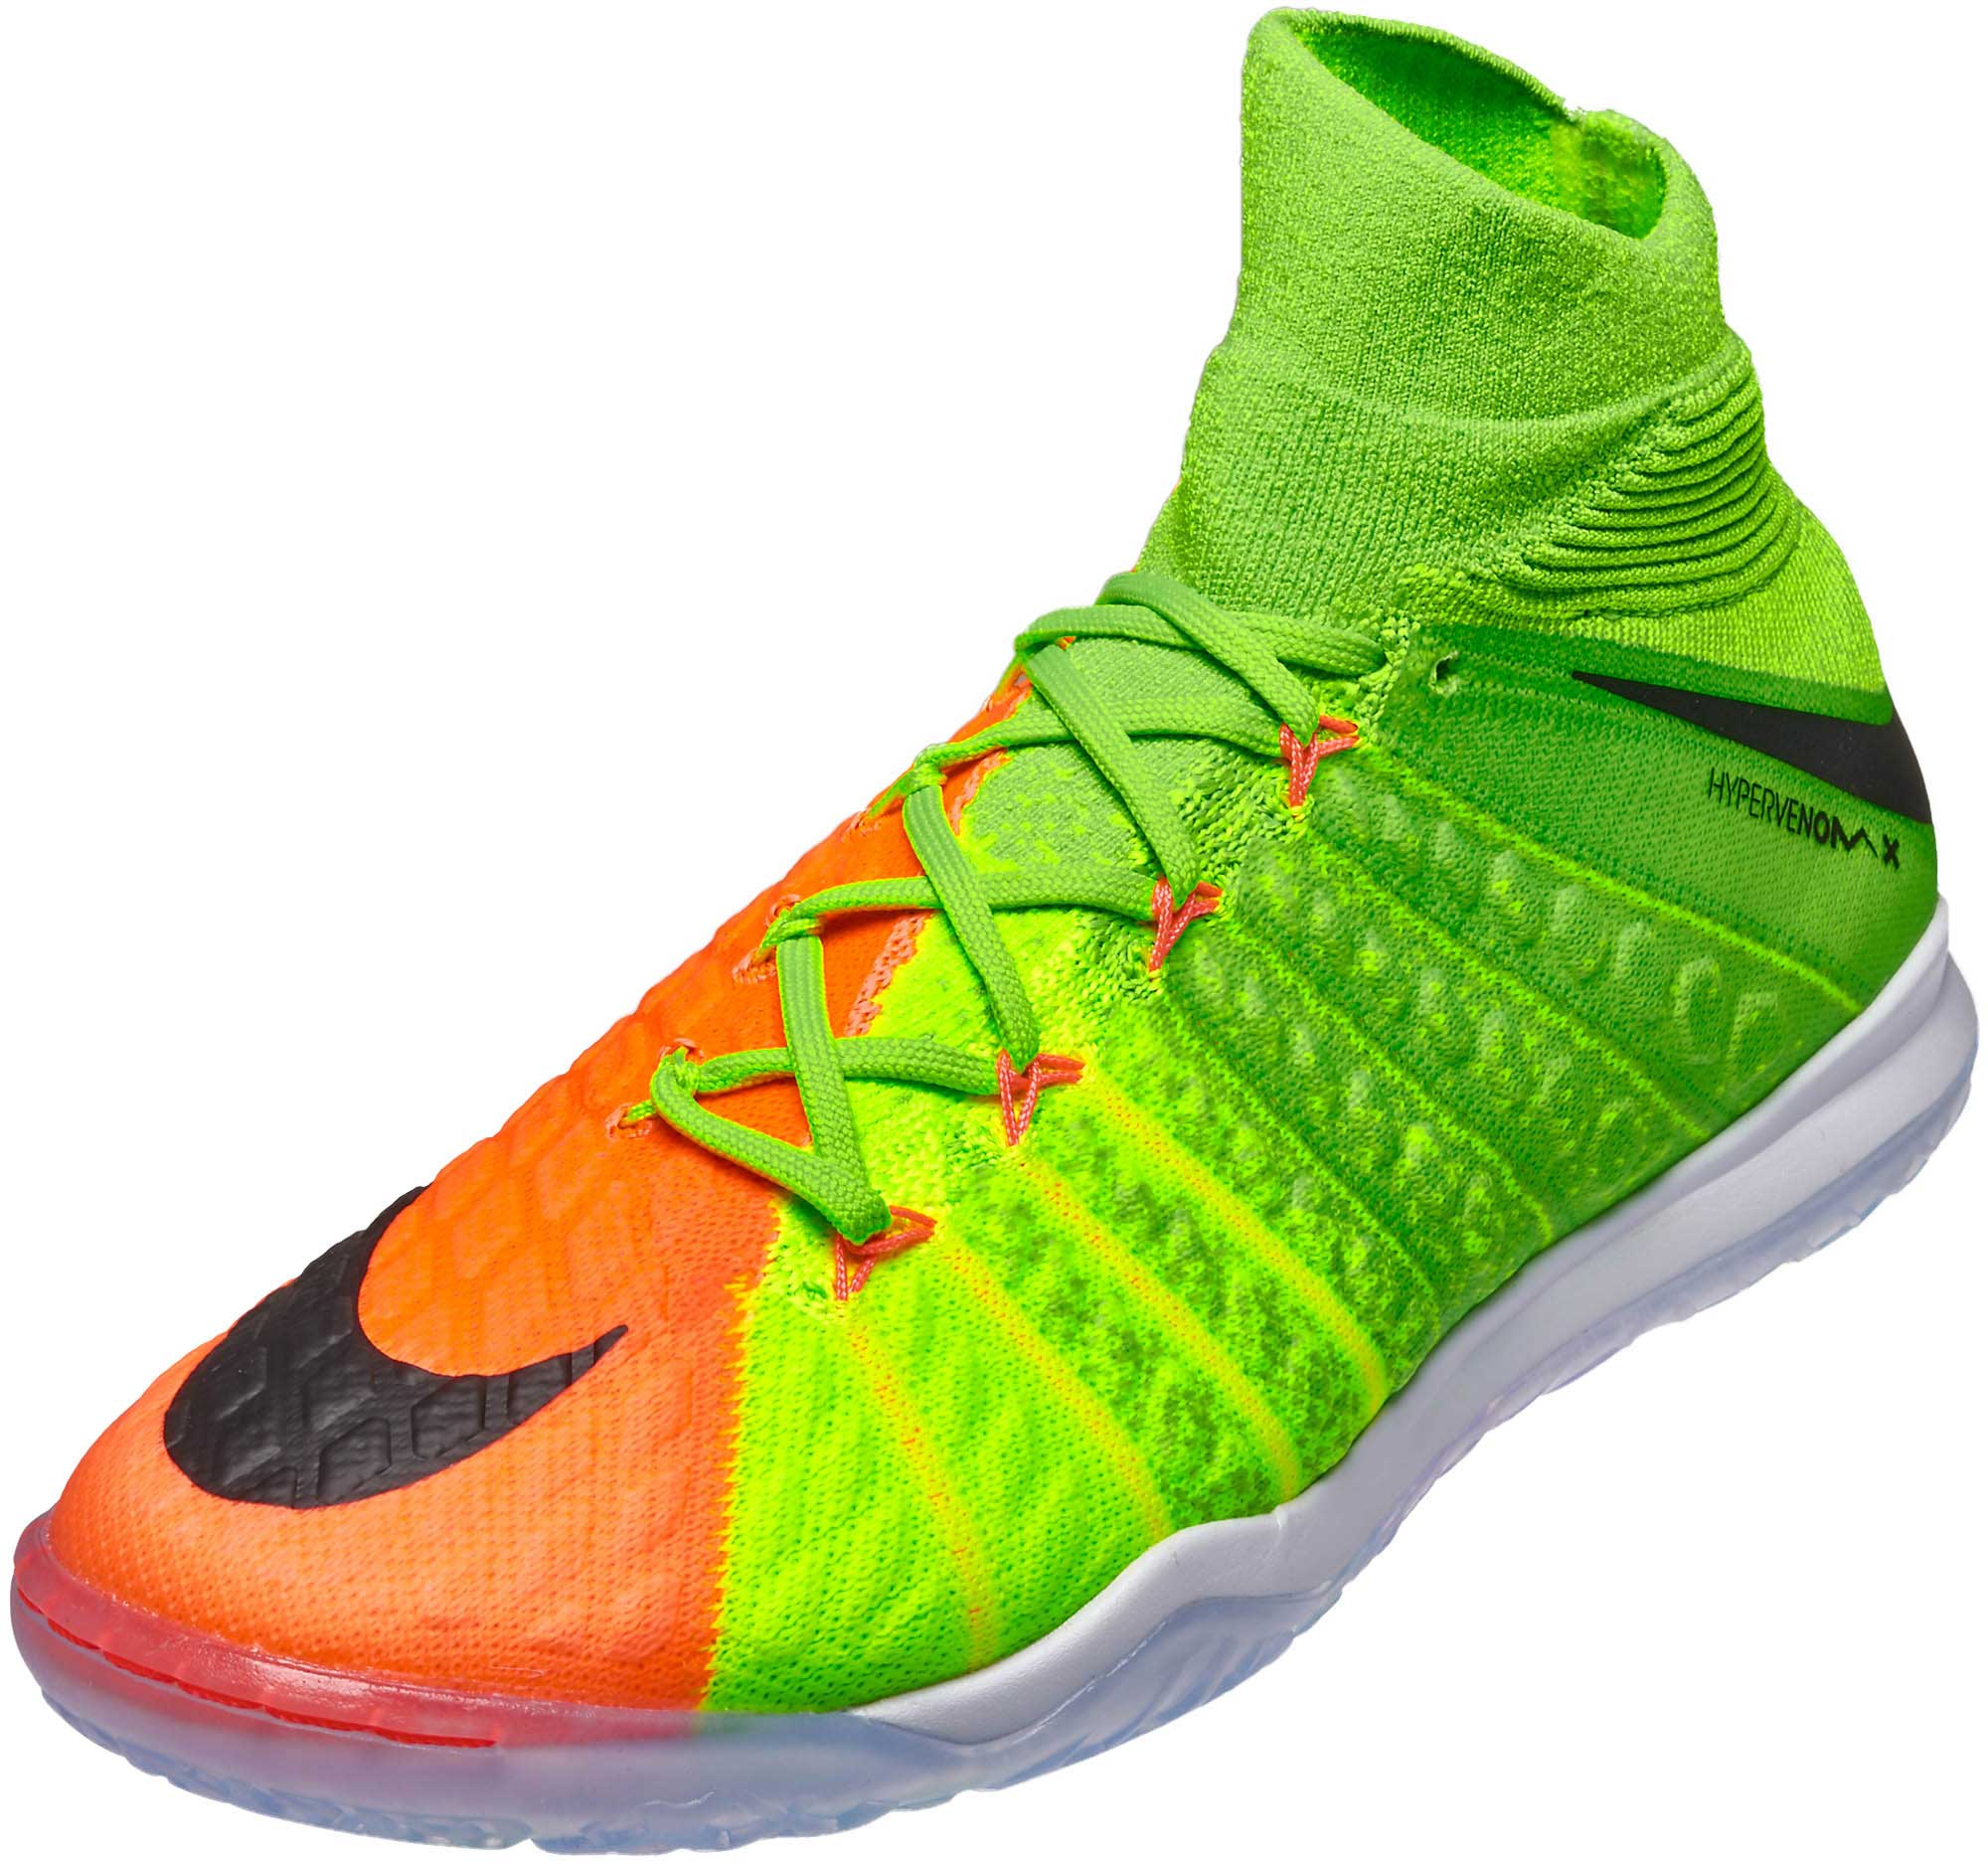 newest 2cc75 ec356 nike hypervenom indoor green